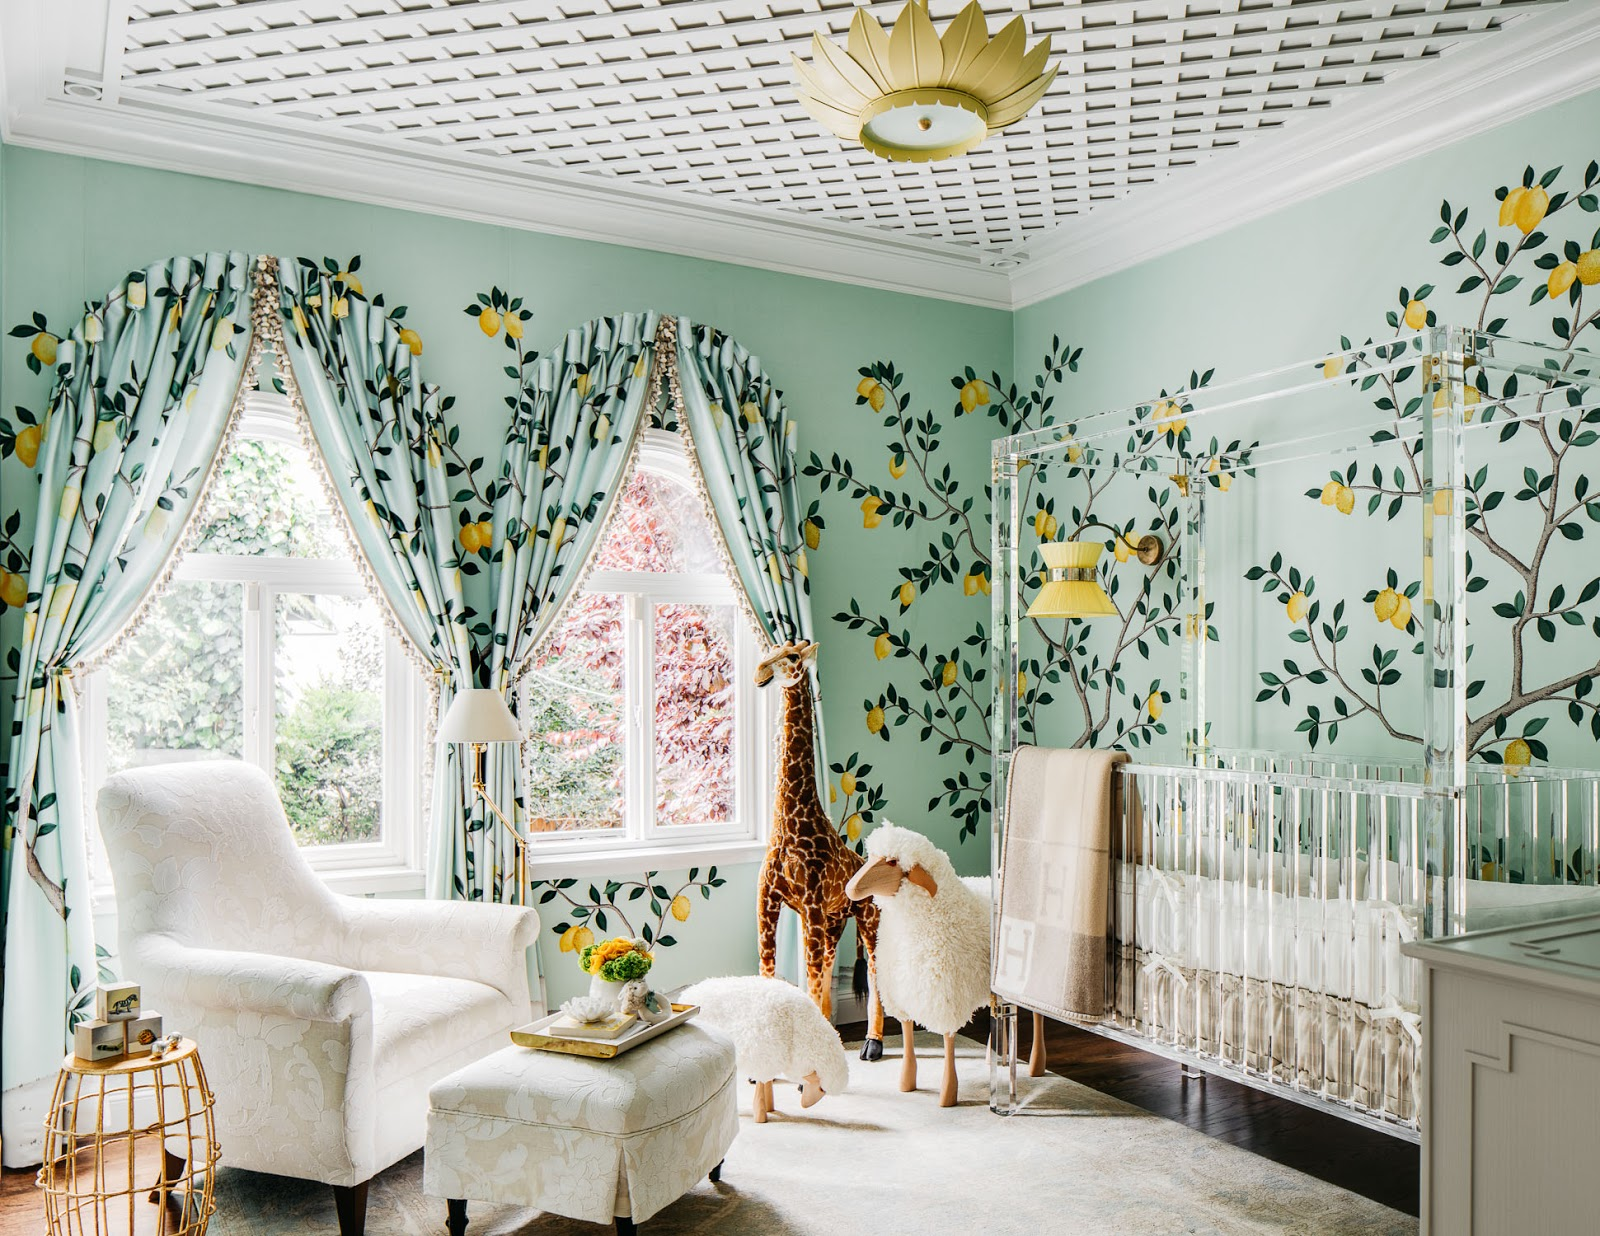 A Magical Nursery By Dina Bandman At The 2018 San